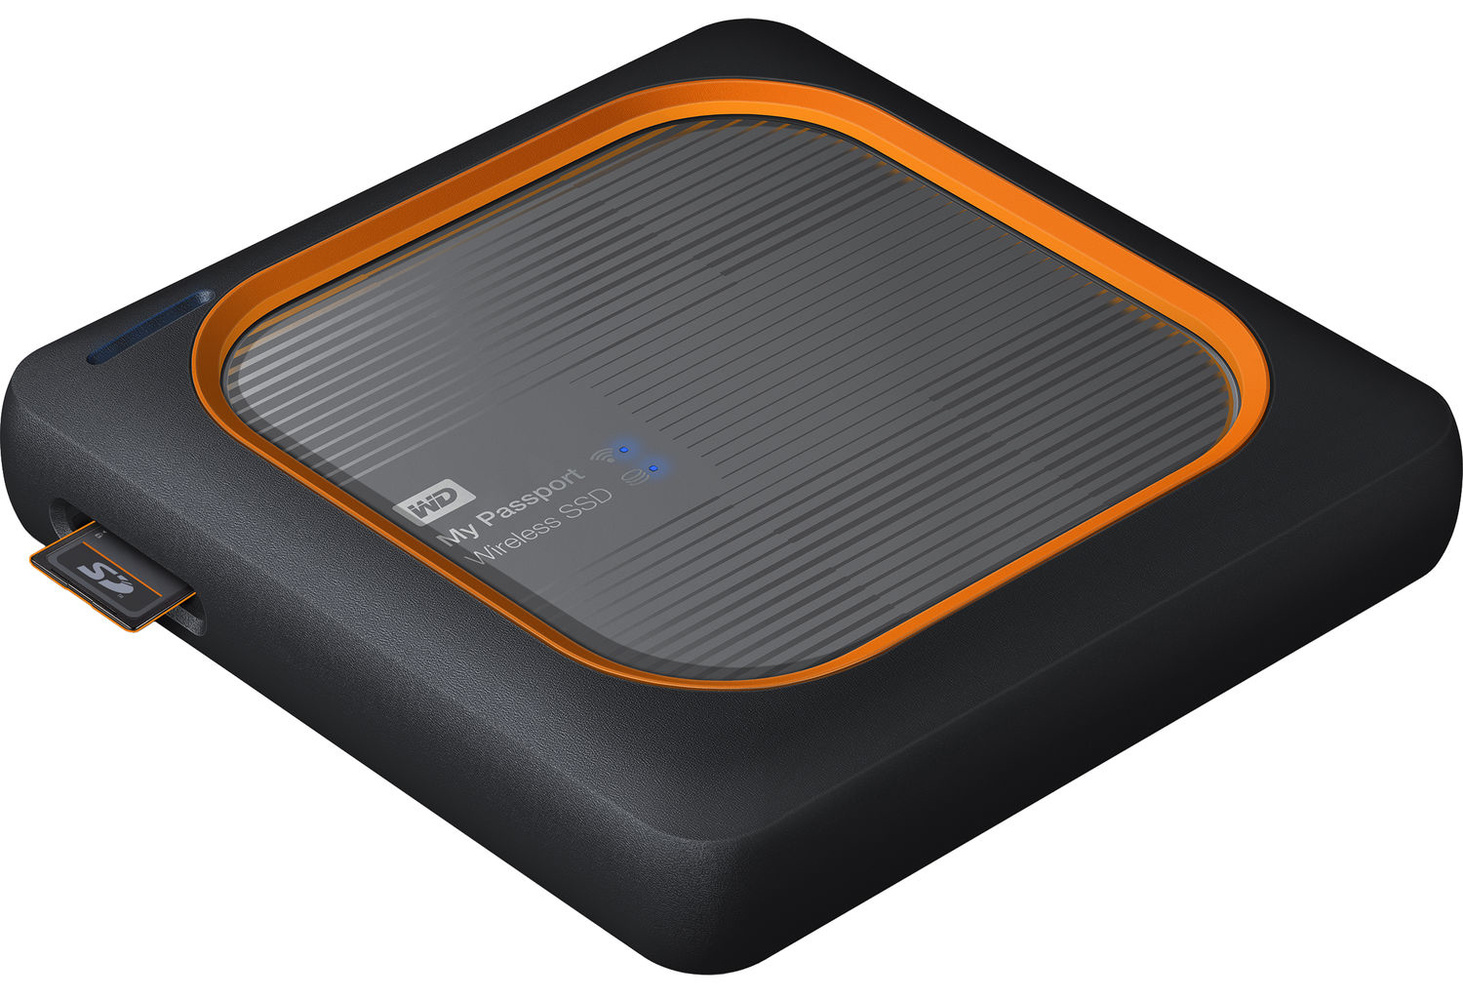 Fstoppers Reviews the Western Digital My Passport Wireless